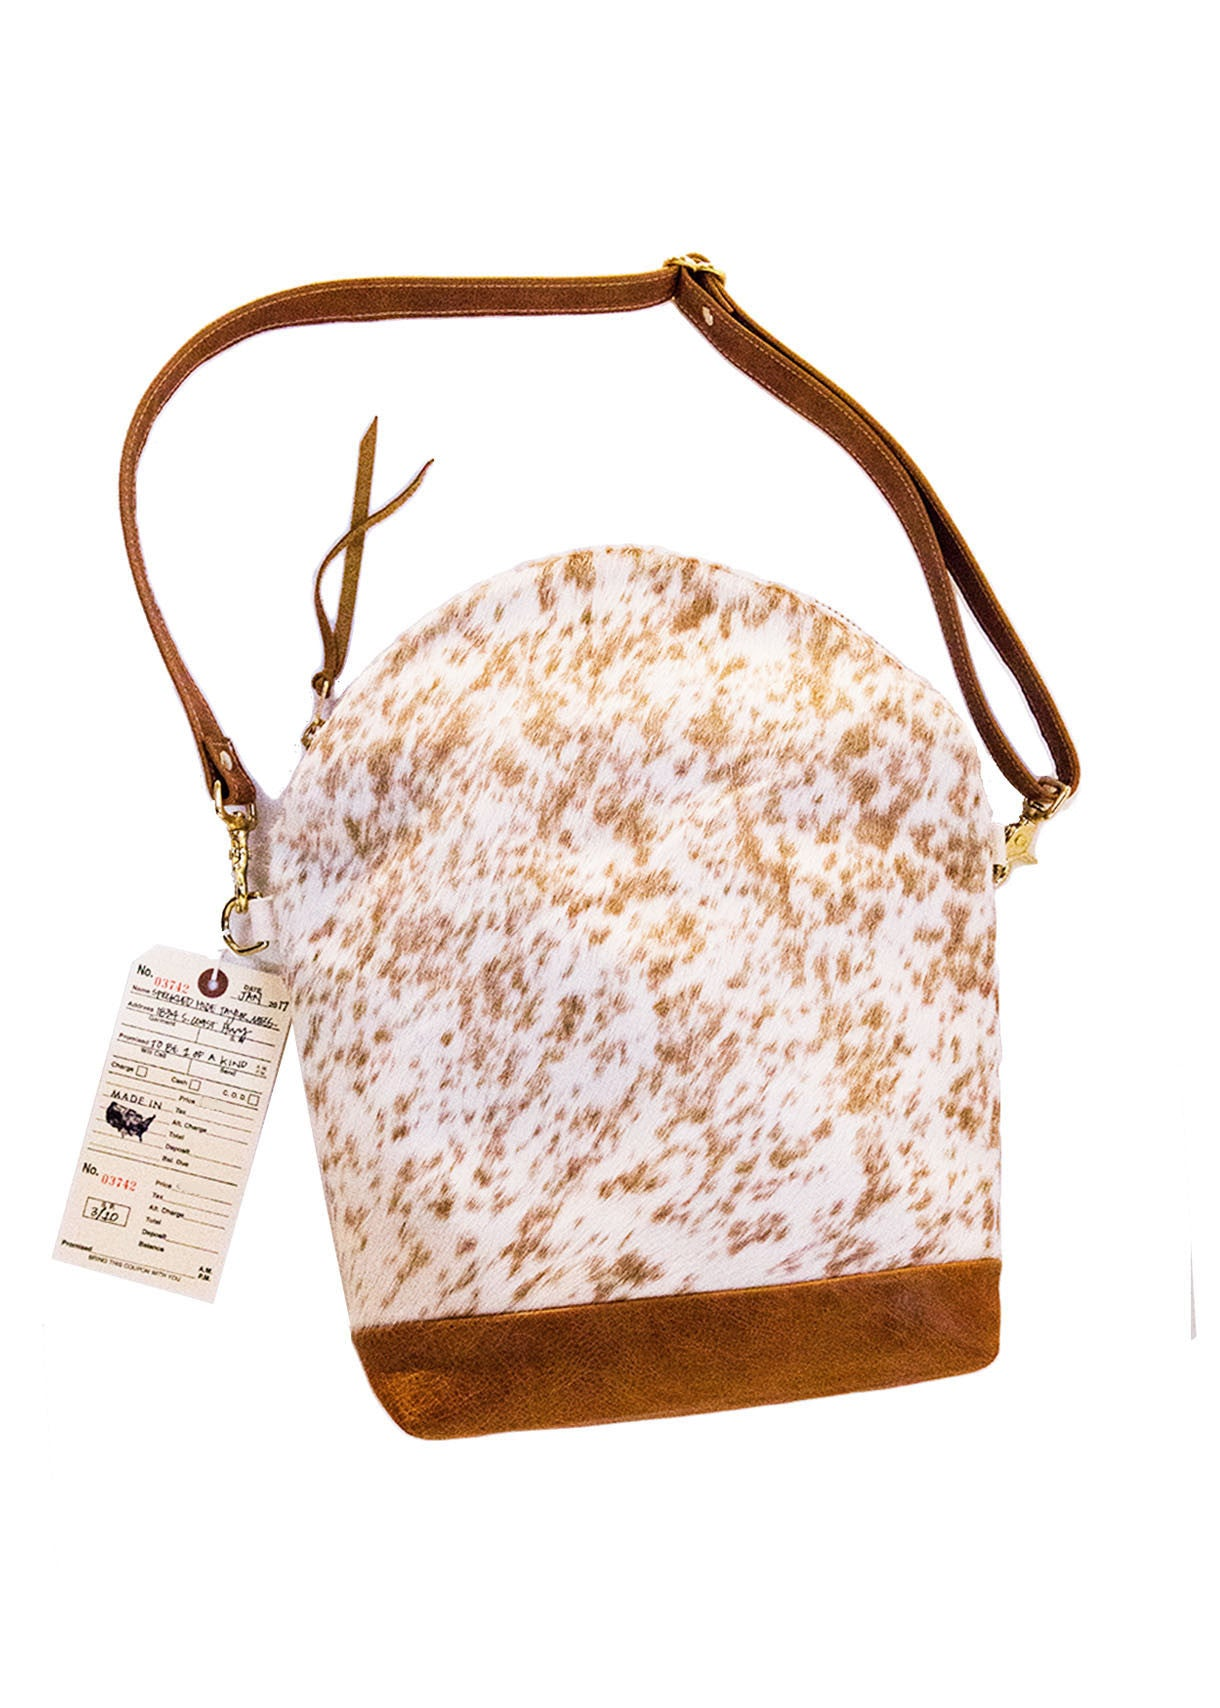 SALE! Tayler Messenger / no.13, was $315.00